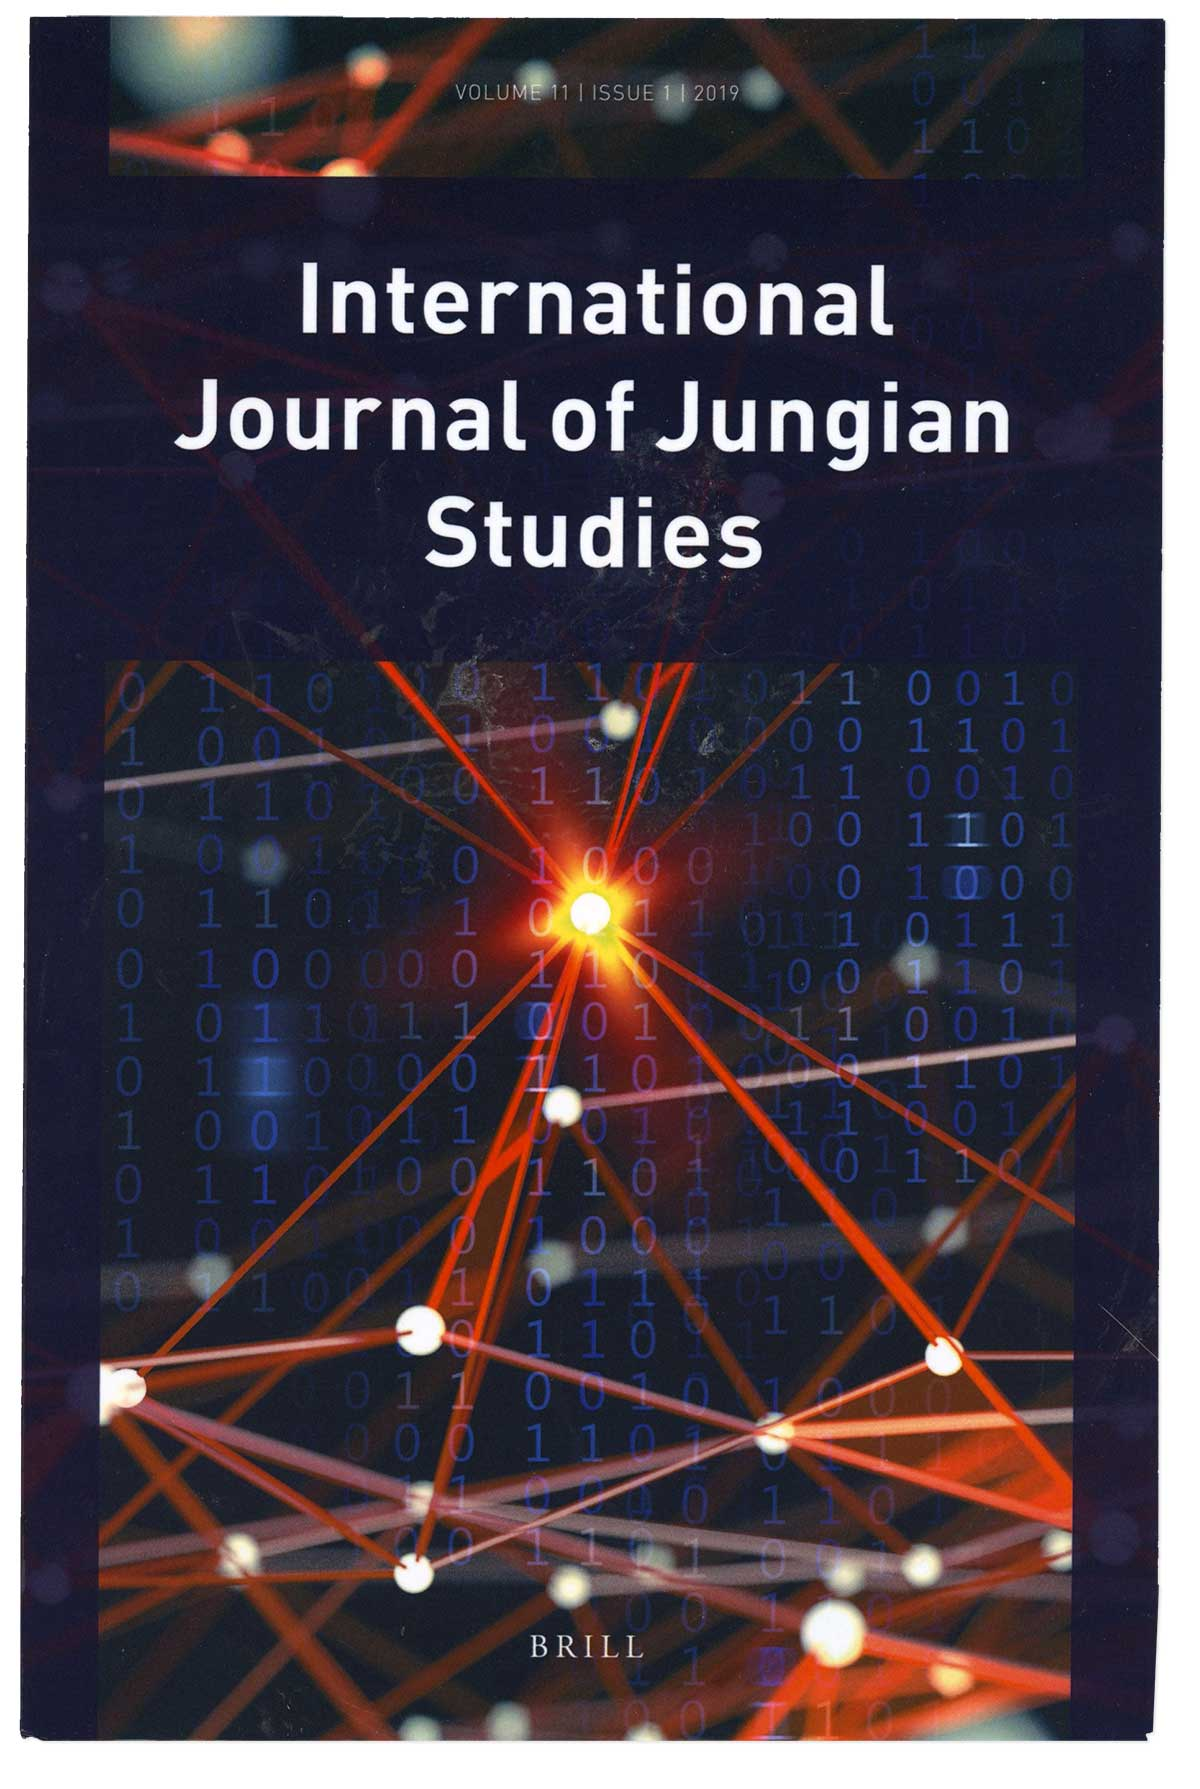 The International Journal of Jungian Studies (IJJS) Vol 11 Issue 11 2019